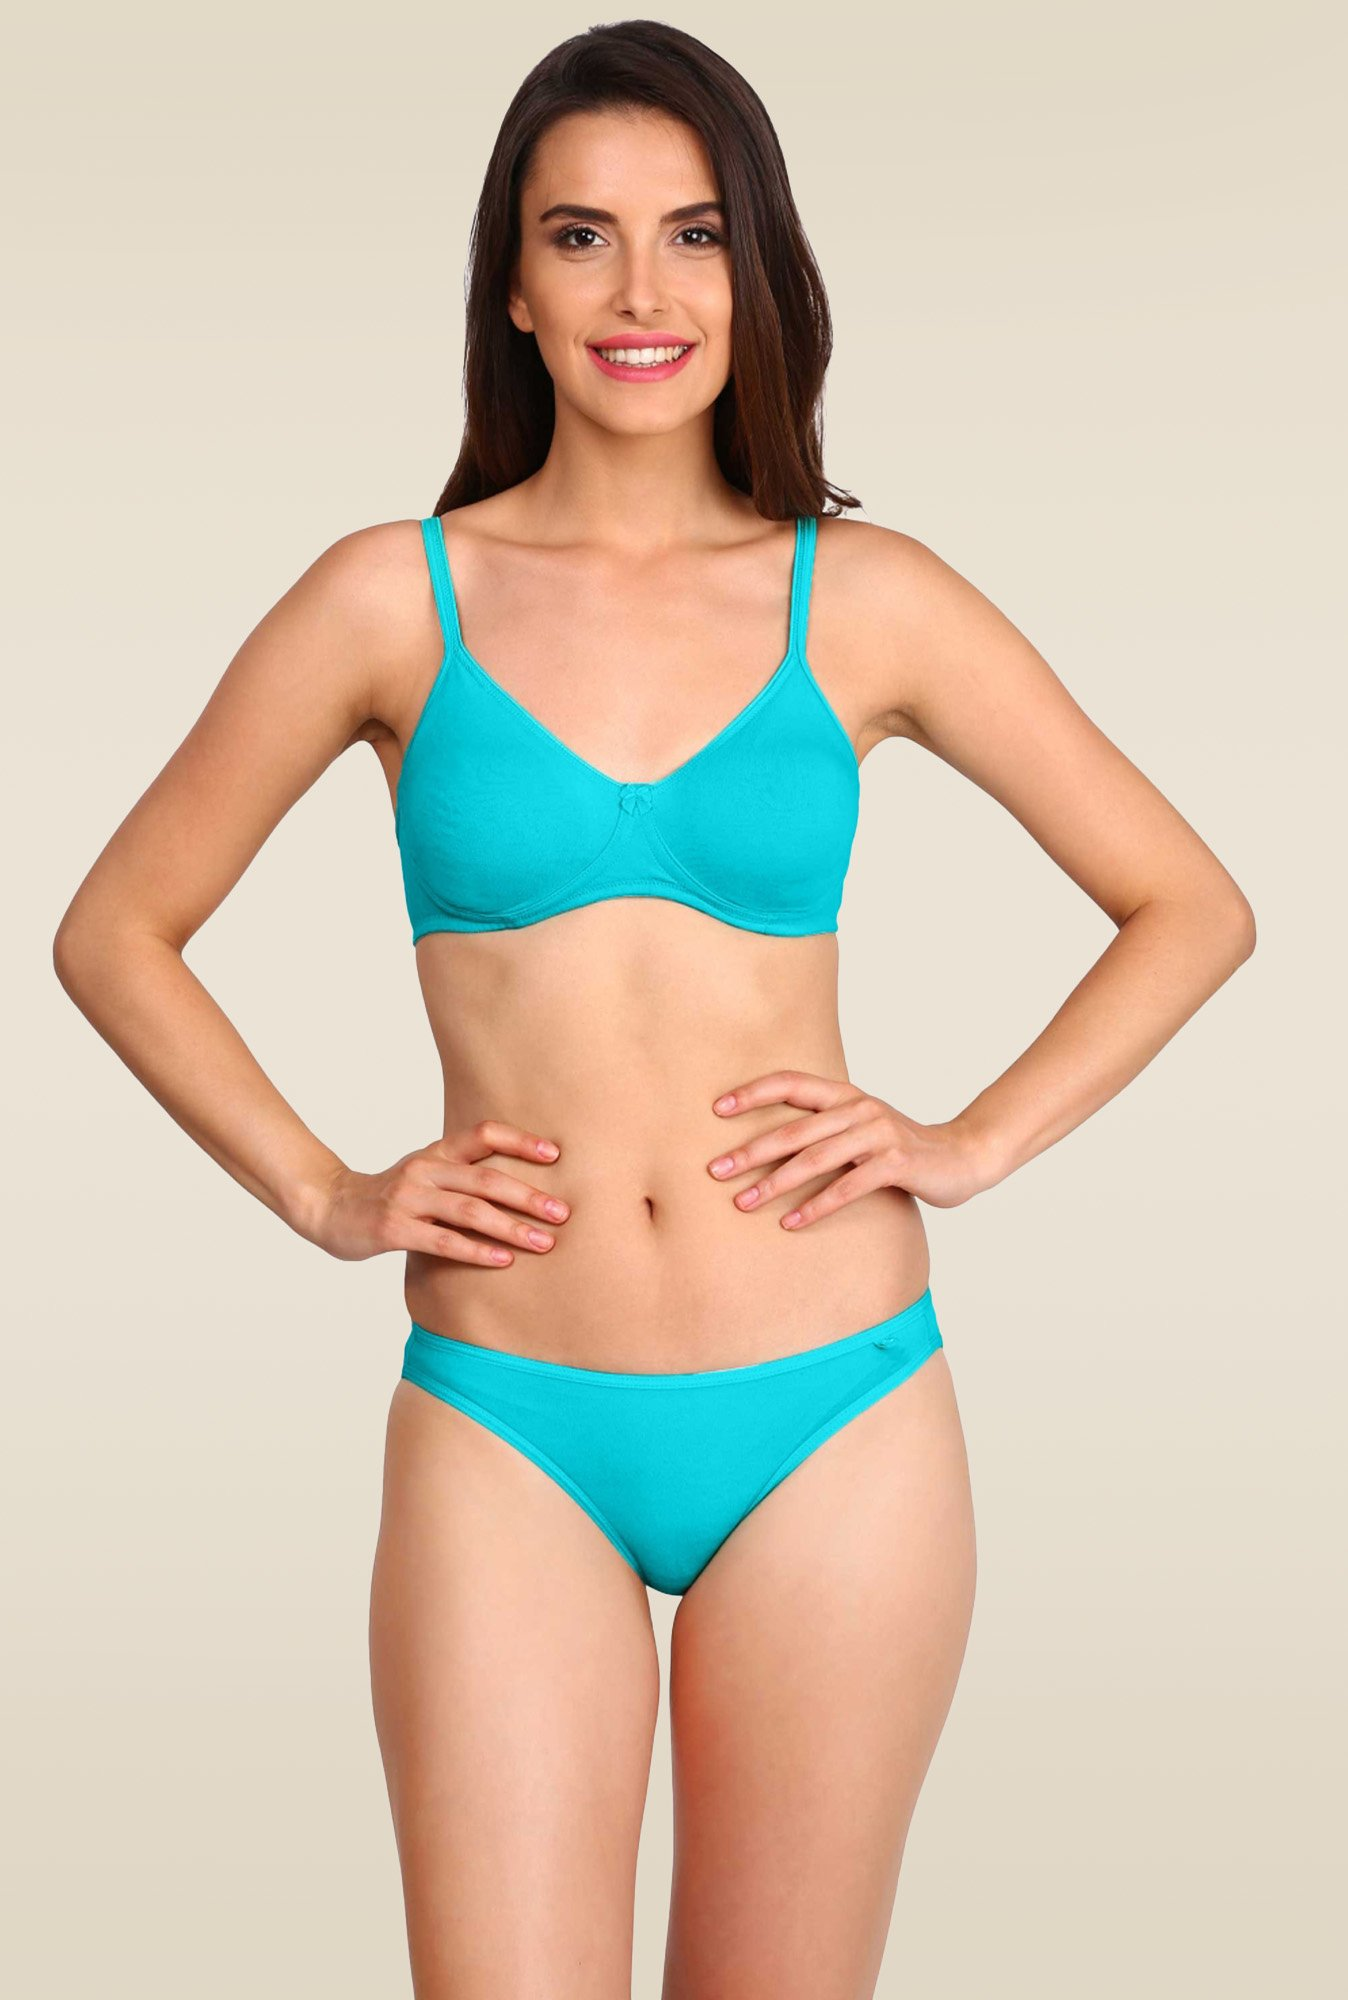 Jockey Teal Seamless Shaper Bra - 1722